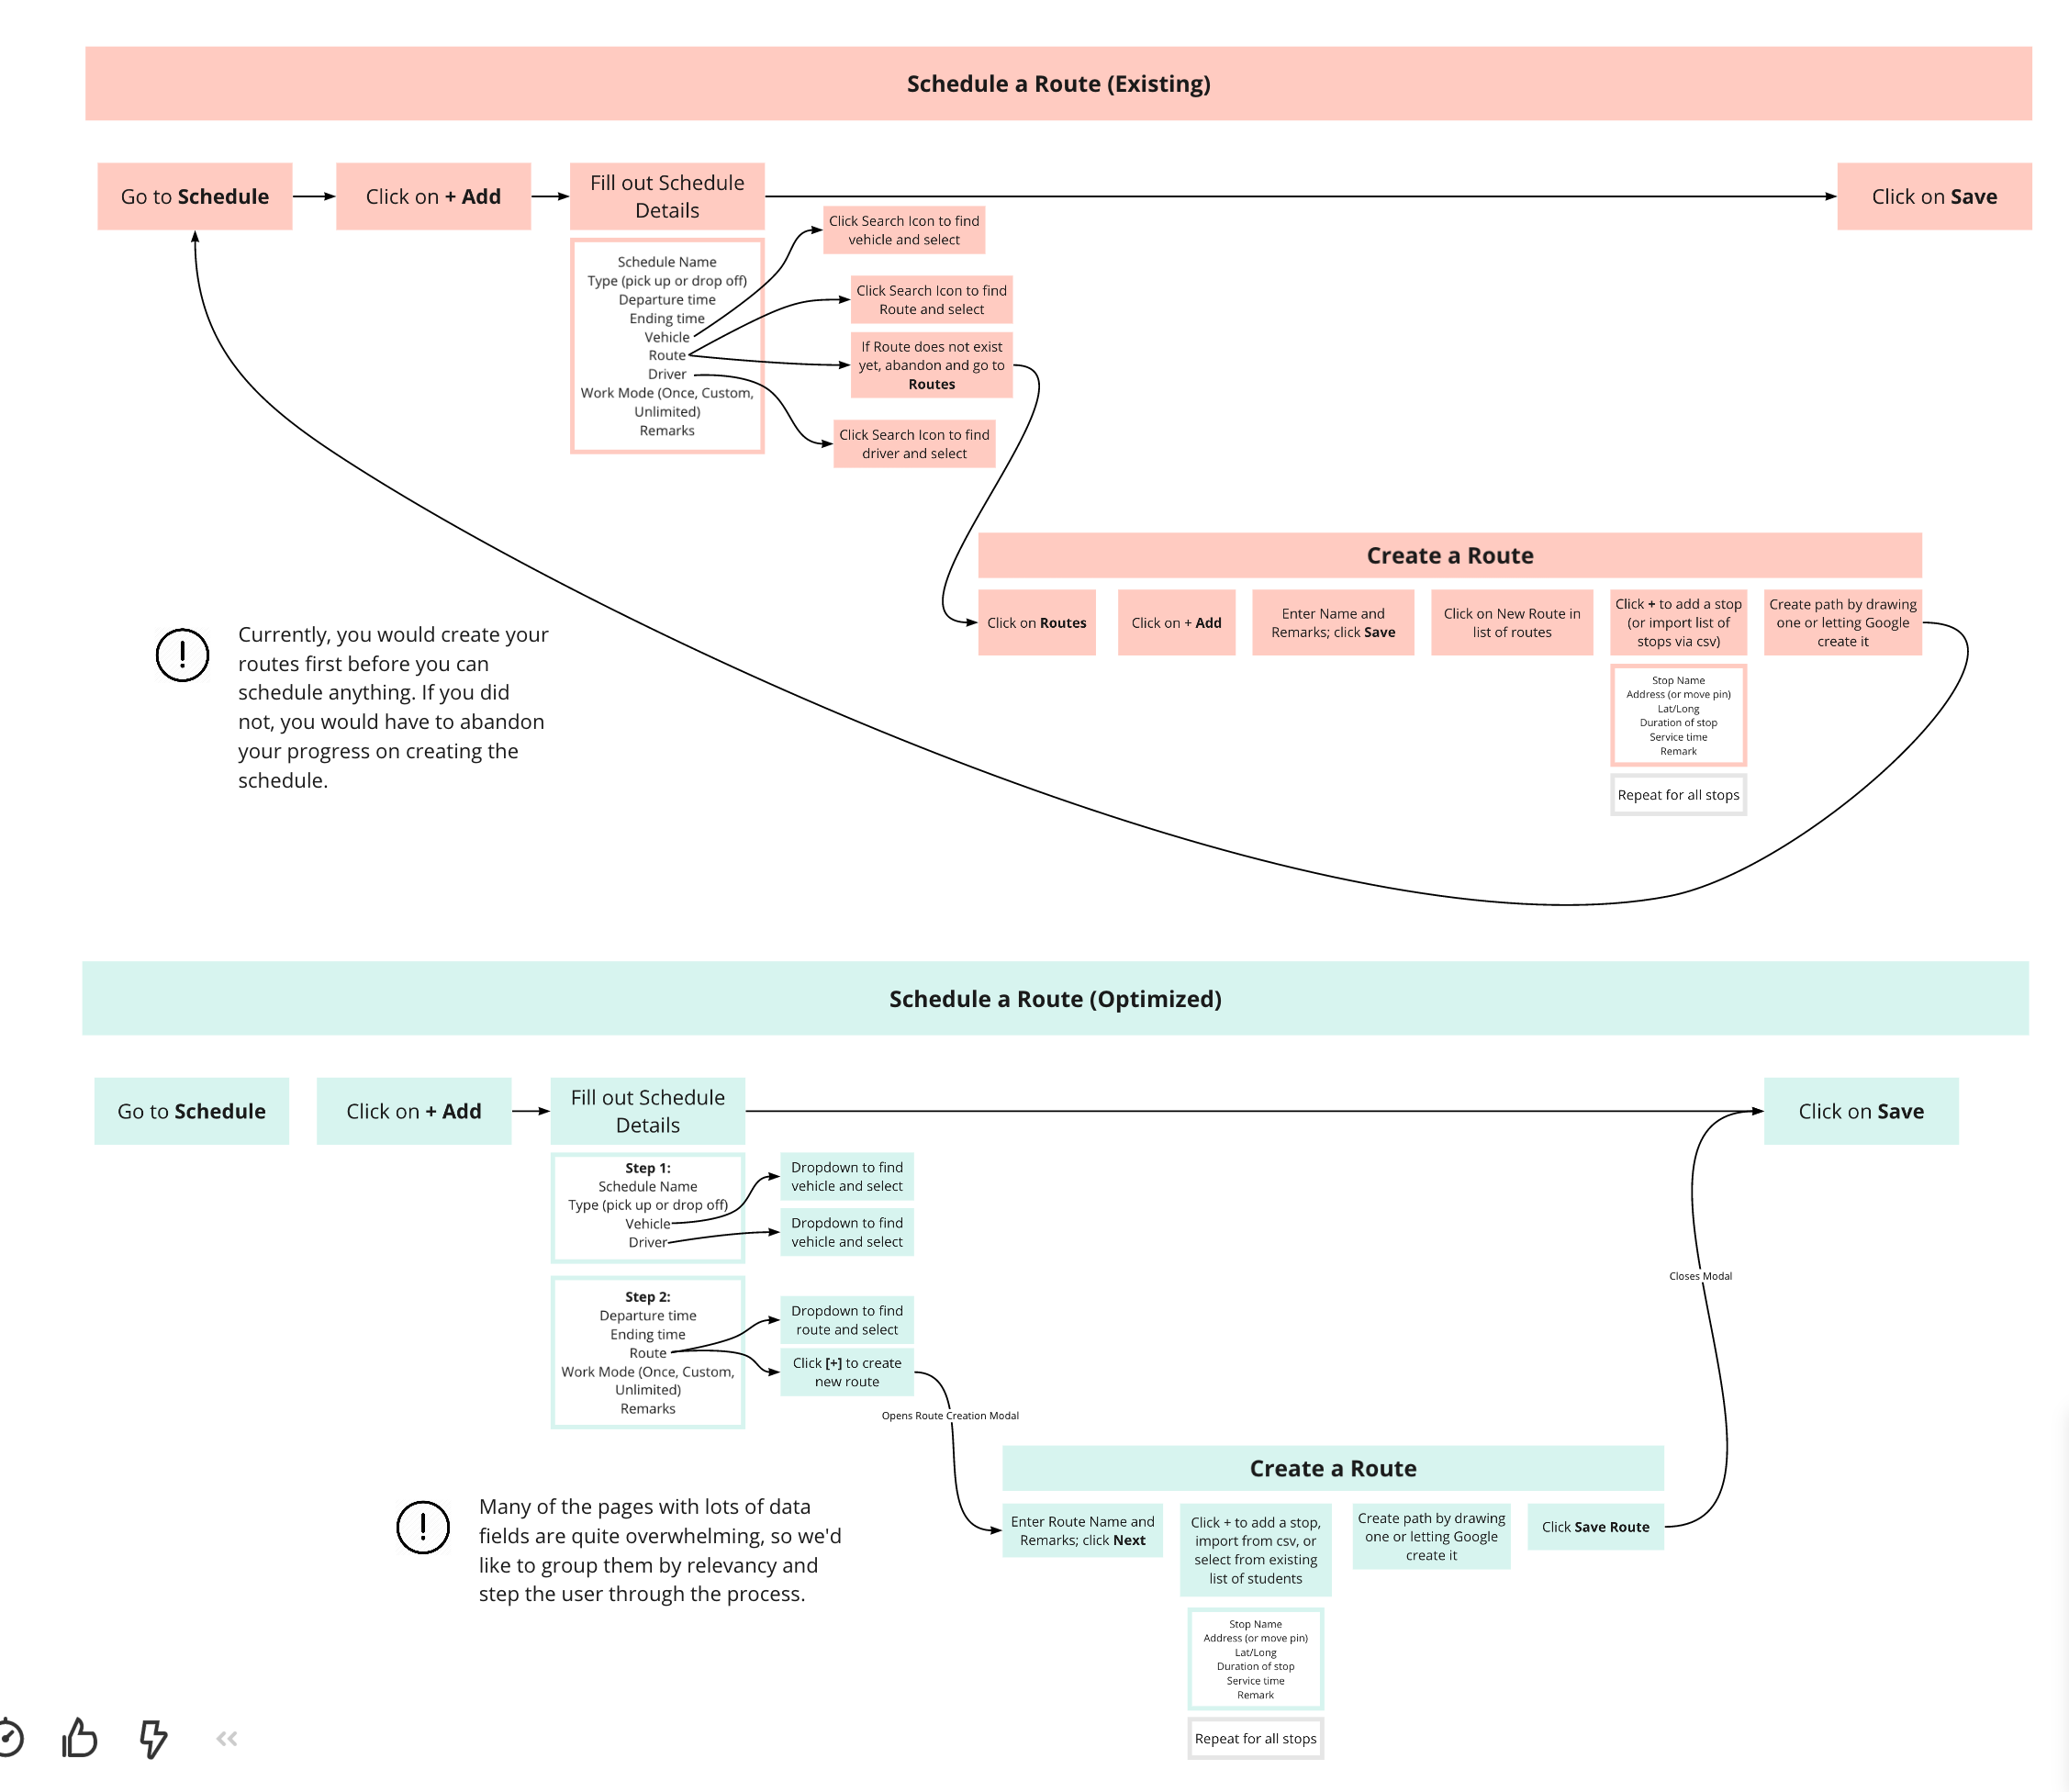 Analyzation of Existing Workflows